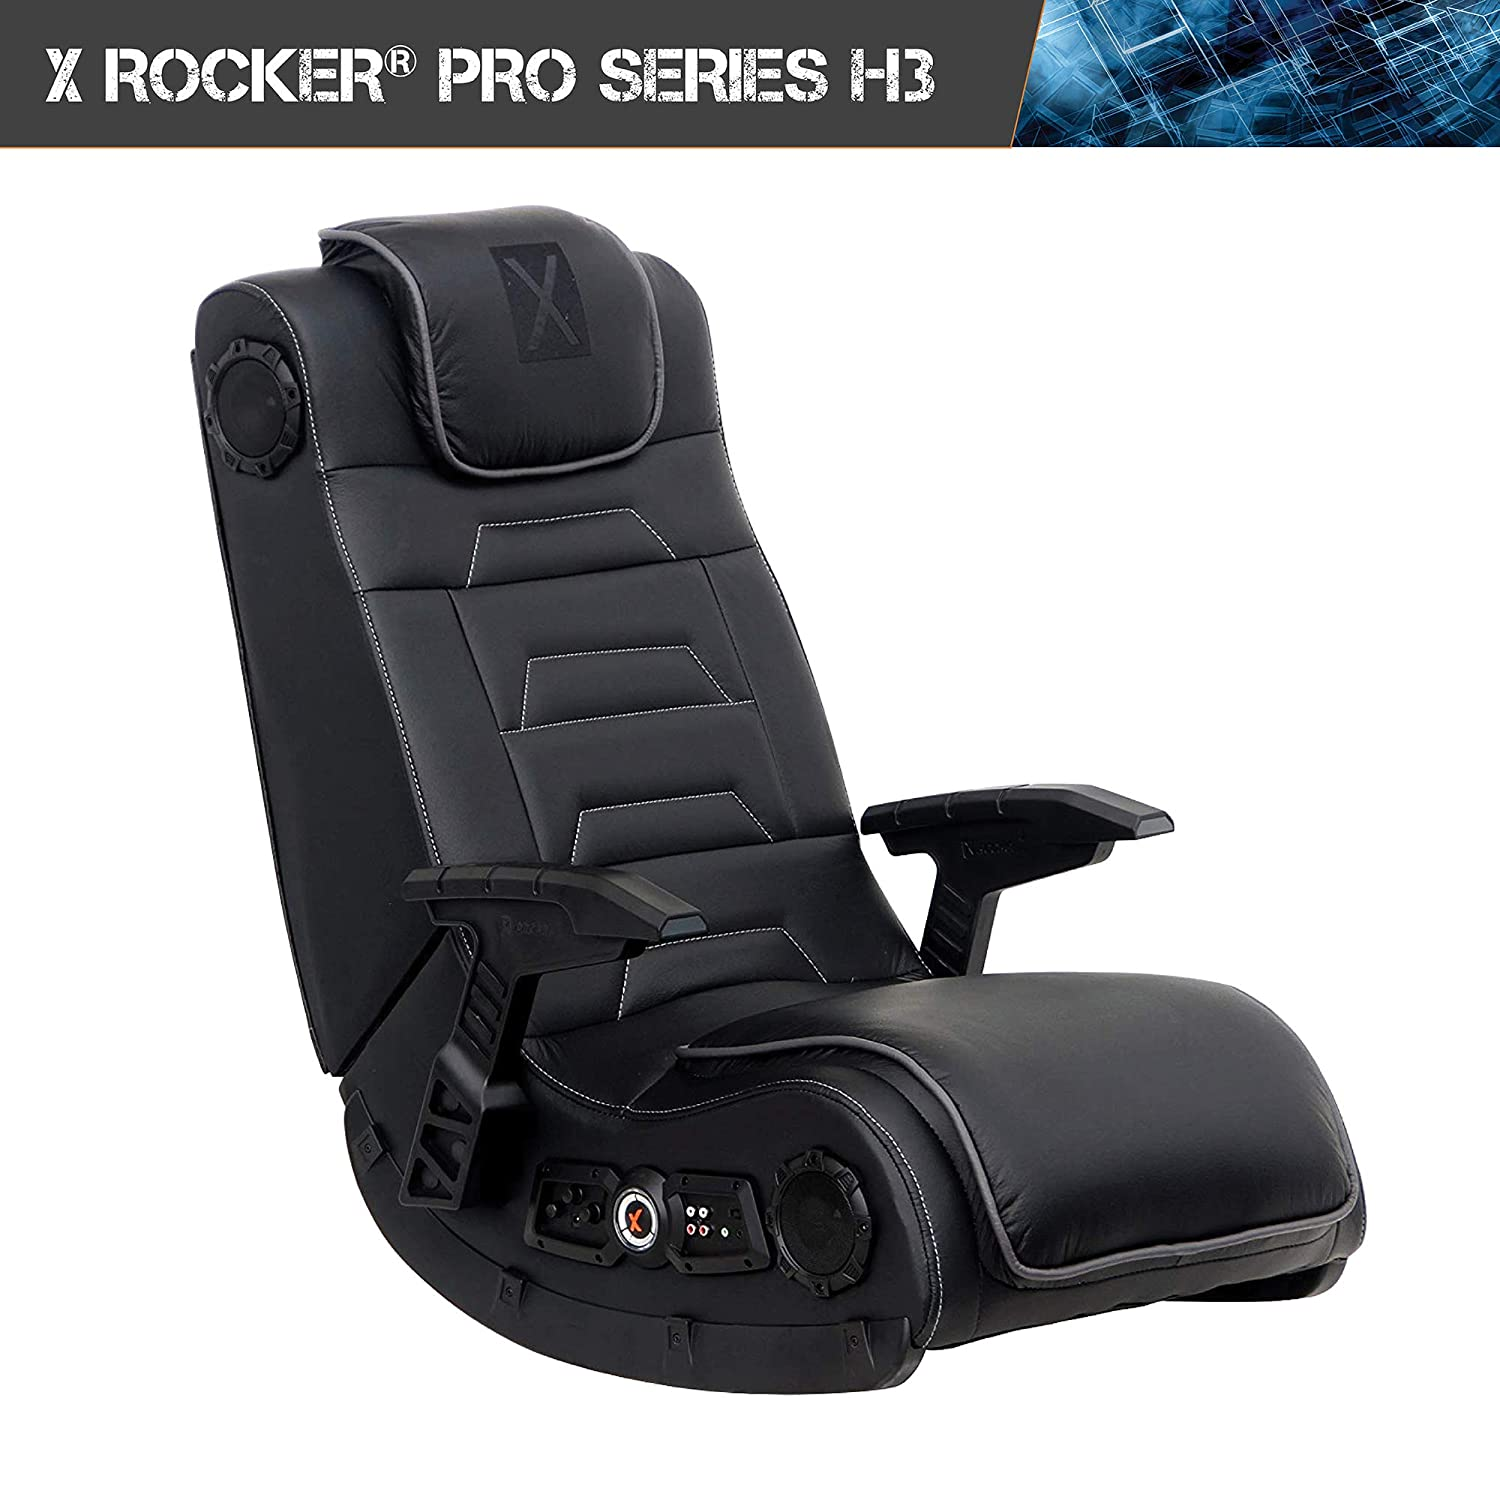 Groovy X Rocker Pro Series H3 Black Leather Vibrating Floor Video Gaming Chair With Headrest For Adult Teen And Kid Gamers 4 1 High Tech Audio And Evergreenethics Interior Chair Design Evergreenethicsorg